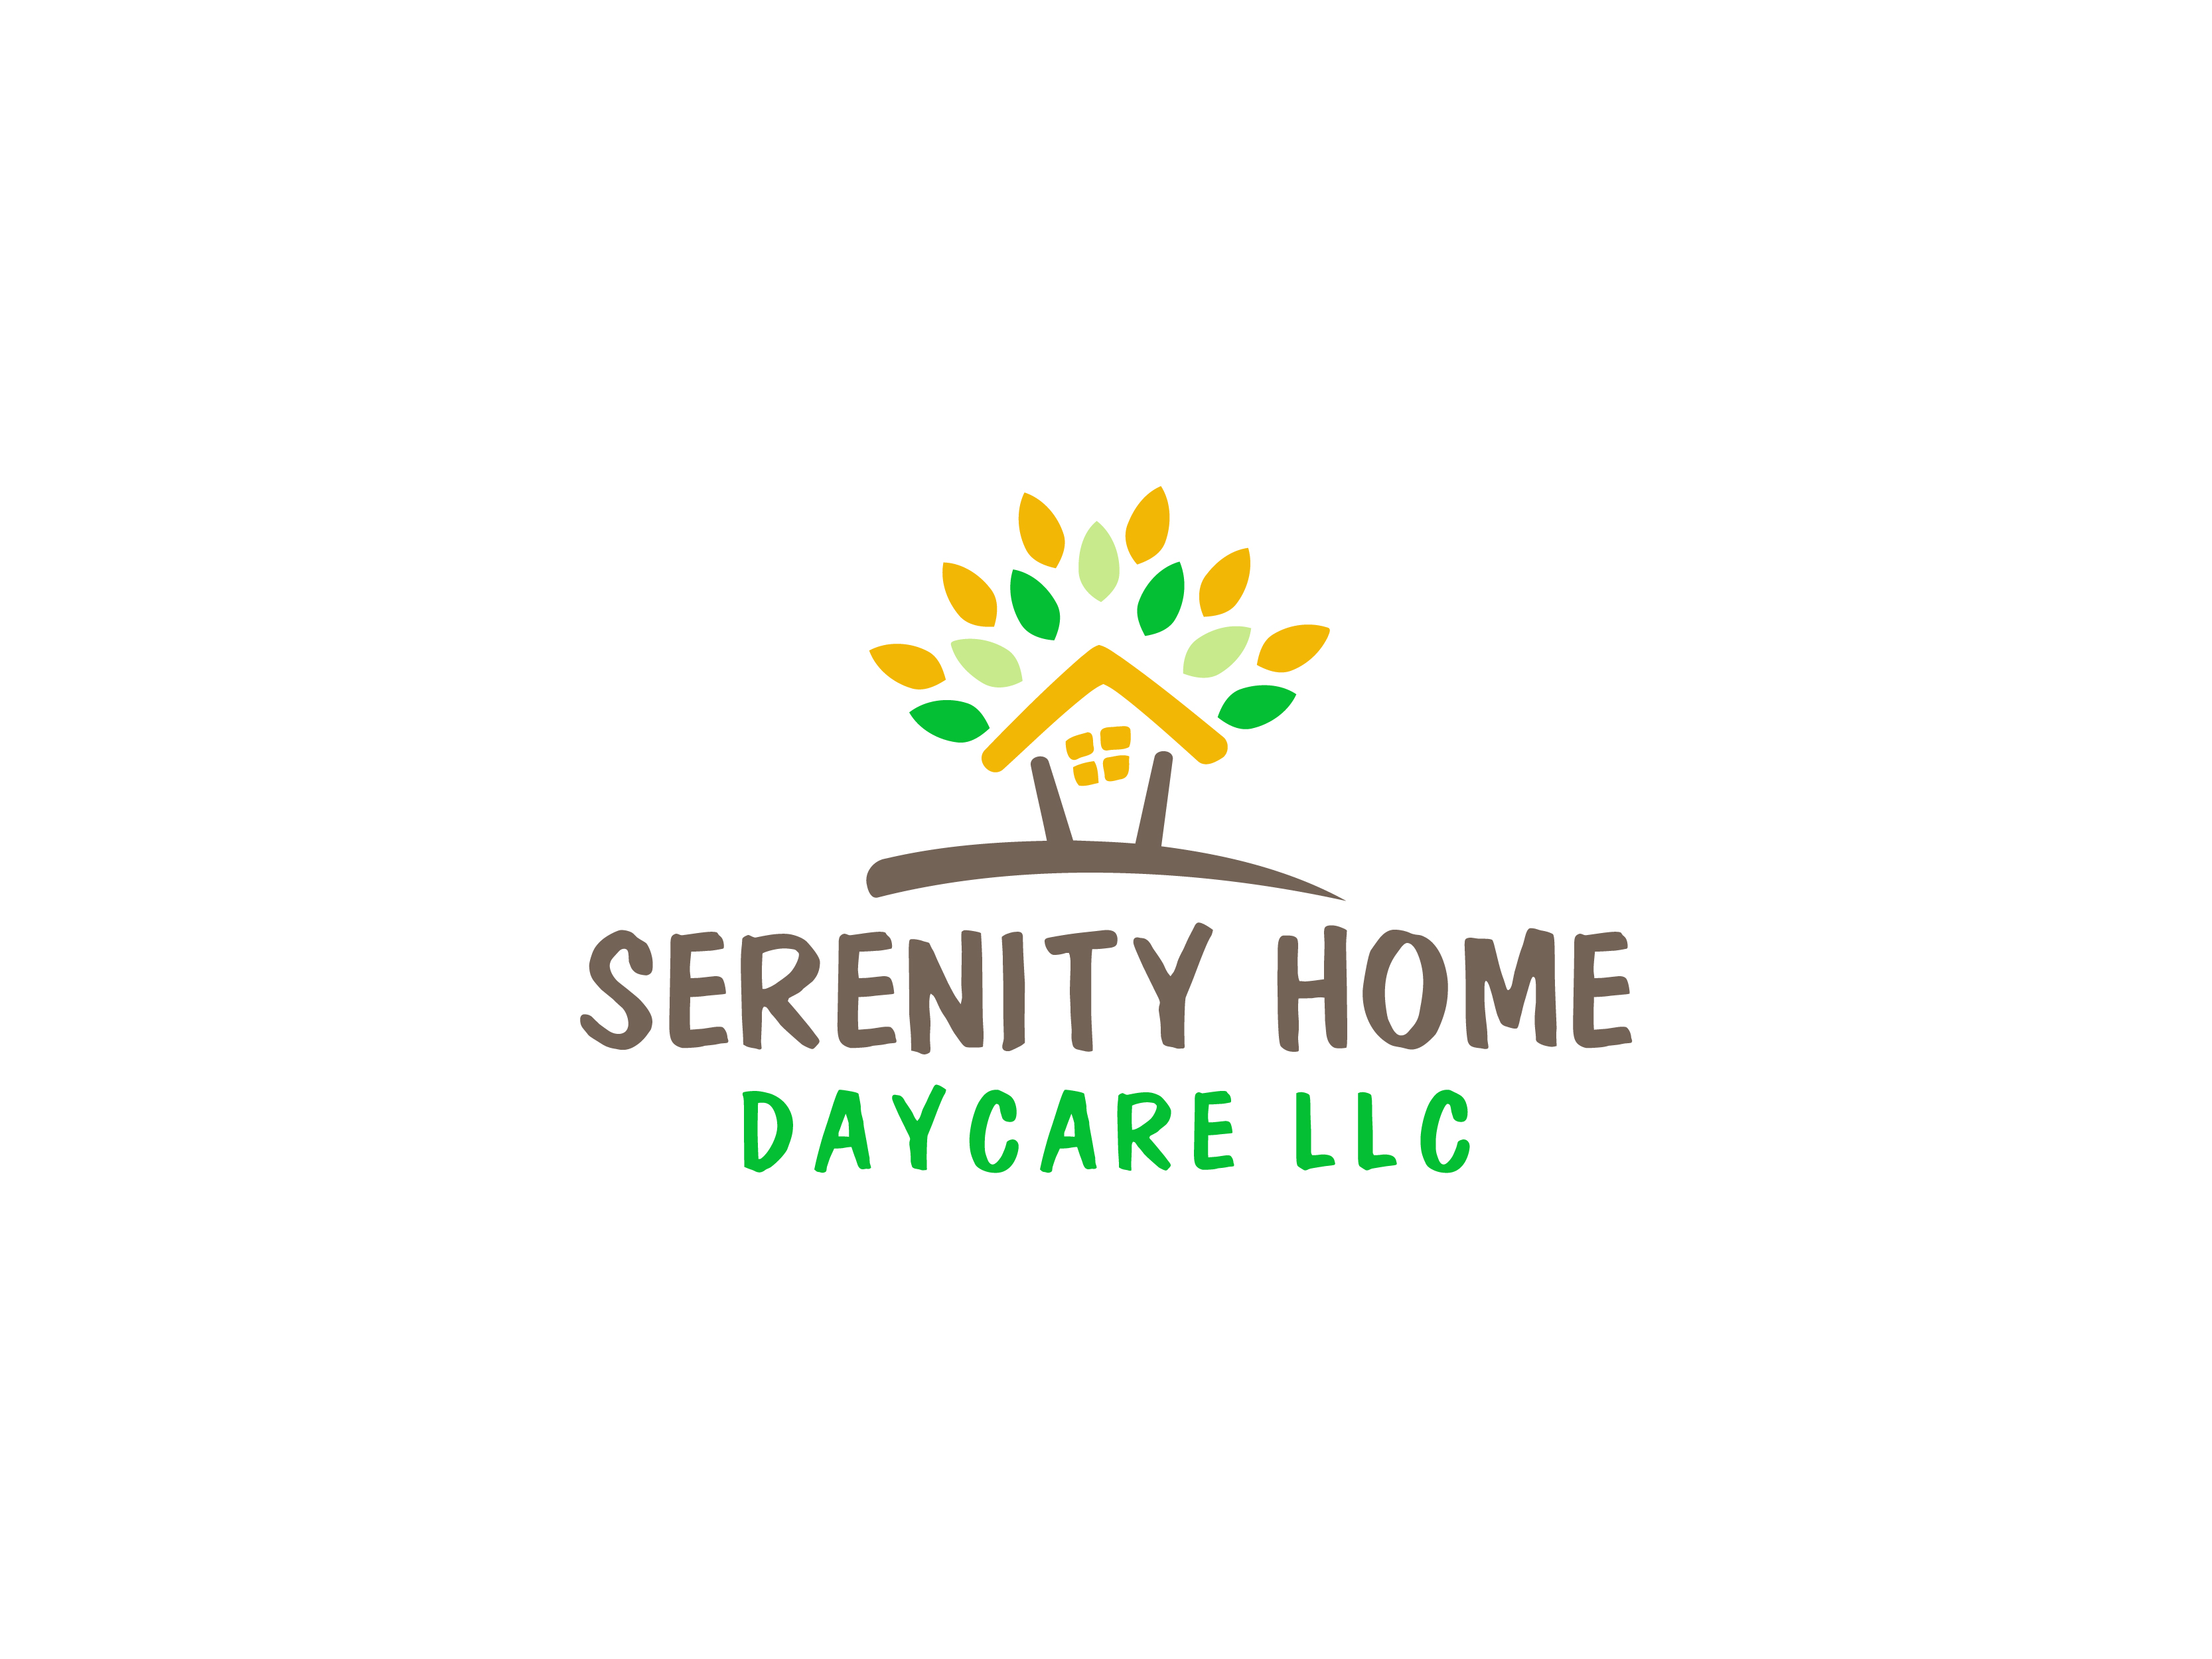 Serenity Home Daycare